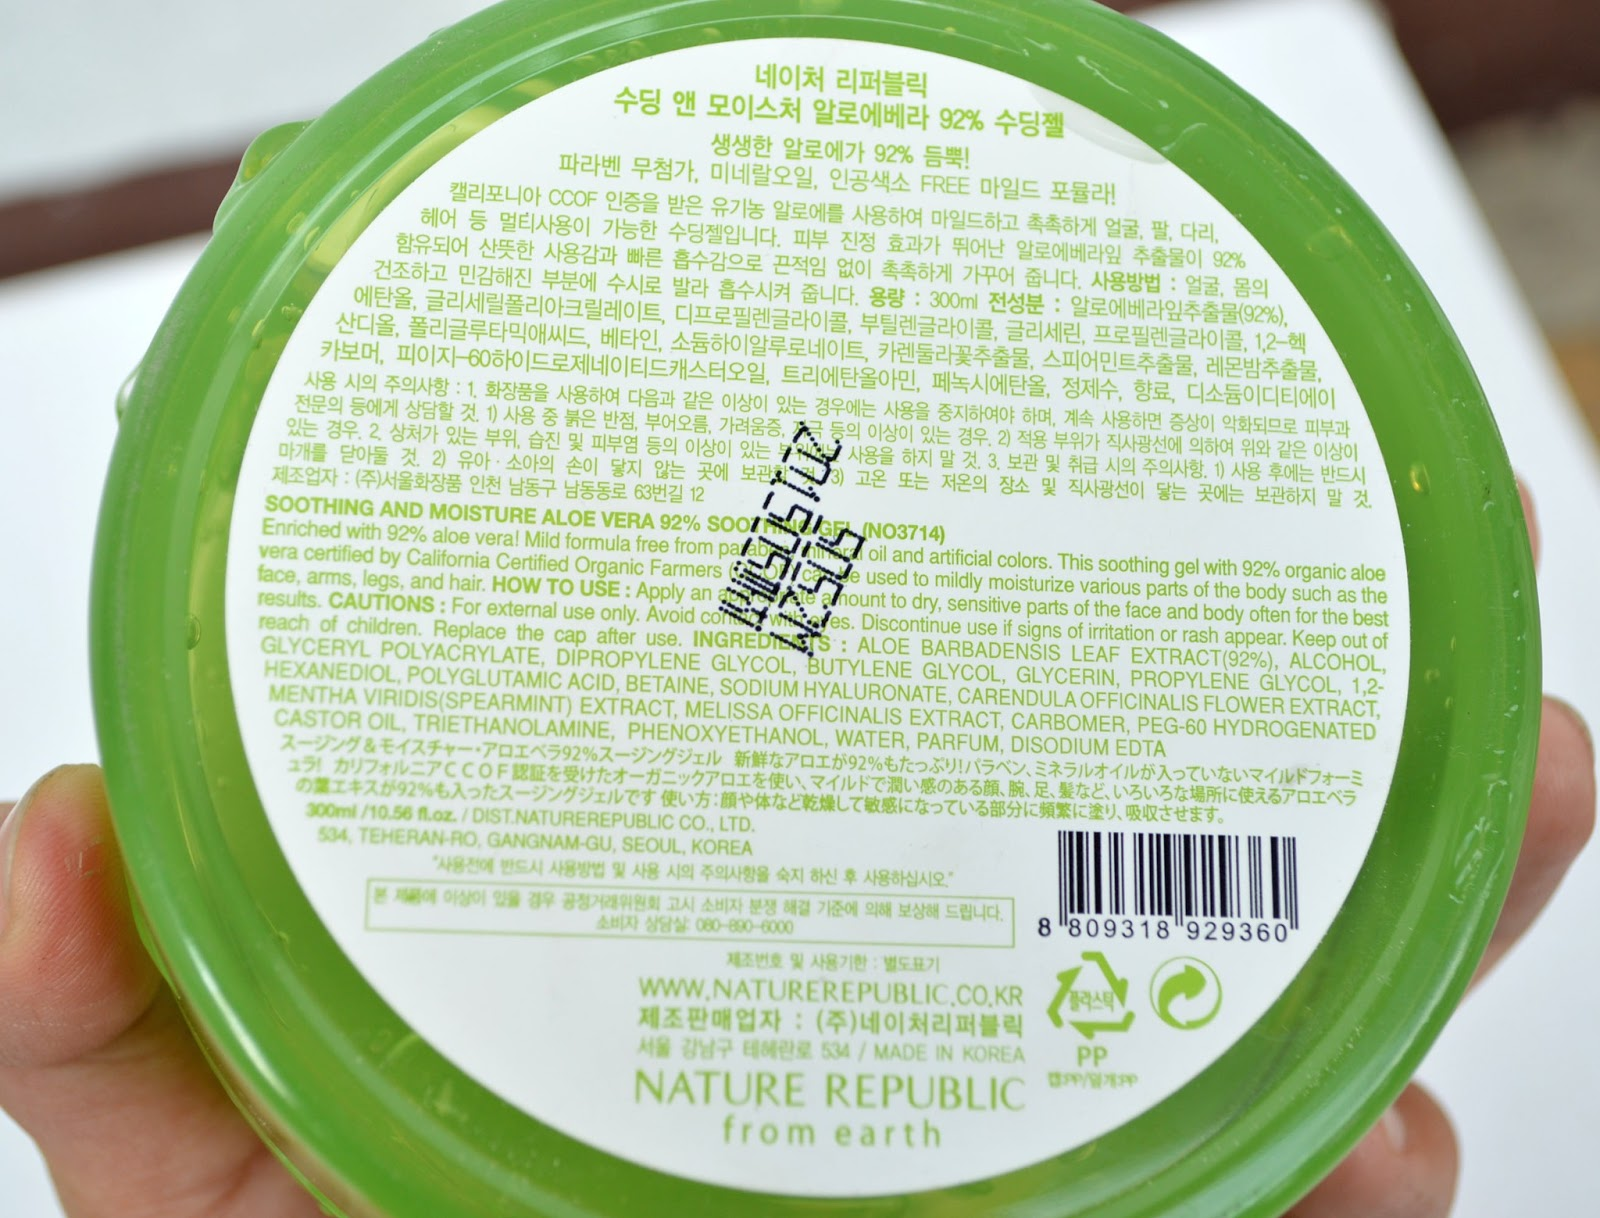 Peachy Pink Sisters Review Nature Republic Soothing Moisture Bath Body Lotion Apple Mango Heres The Ingredients List And Instructions On How To Use